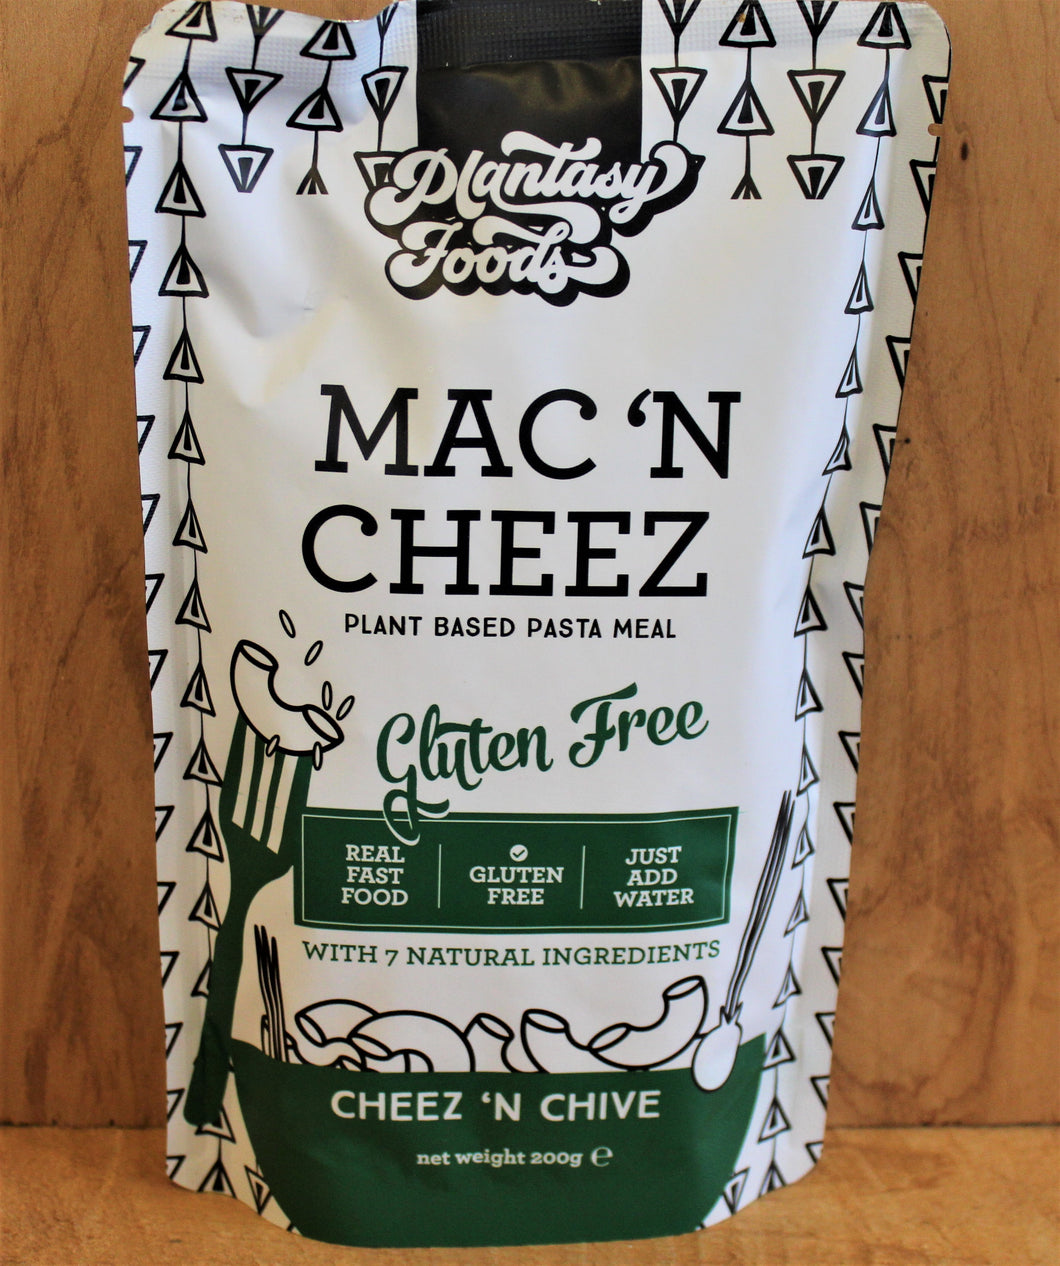 MAC n CHEEZ, PLANT BASED, PASTA MEAL, CHEEZ n CHIVE,200g